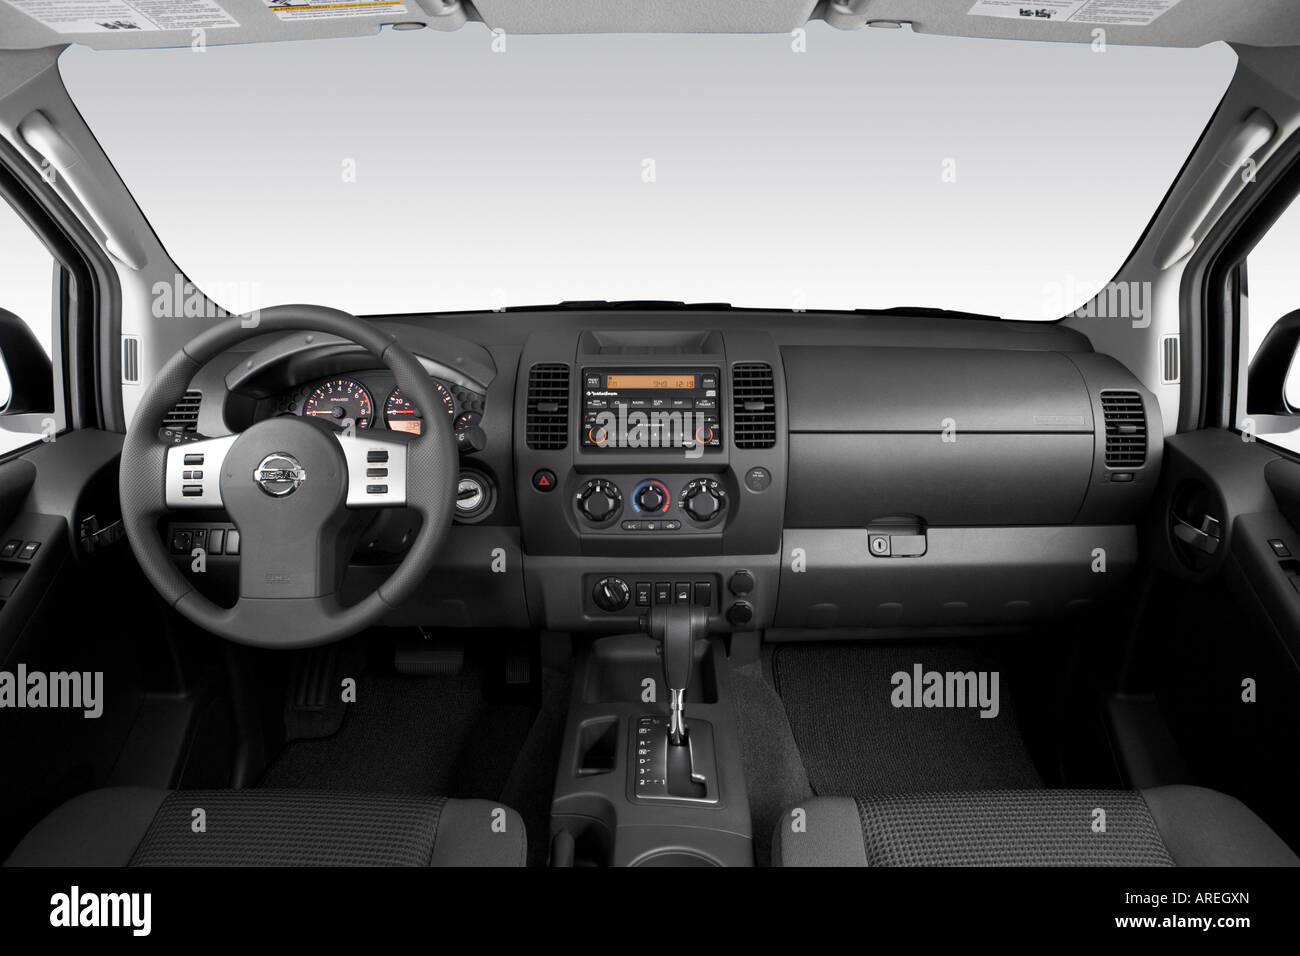 2006 Nissan Xterra Off Road In Silver Dashboard Center Console Stock Photo Alamy